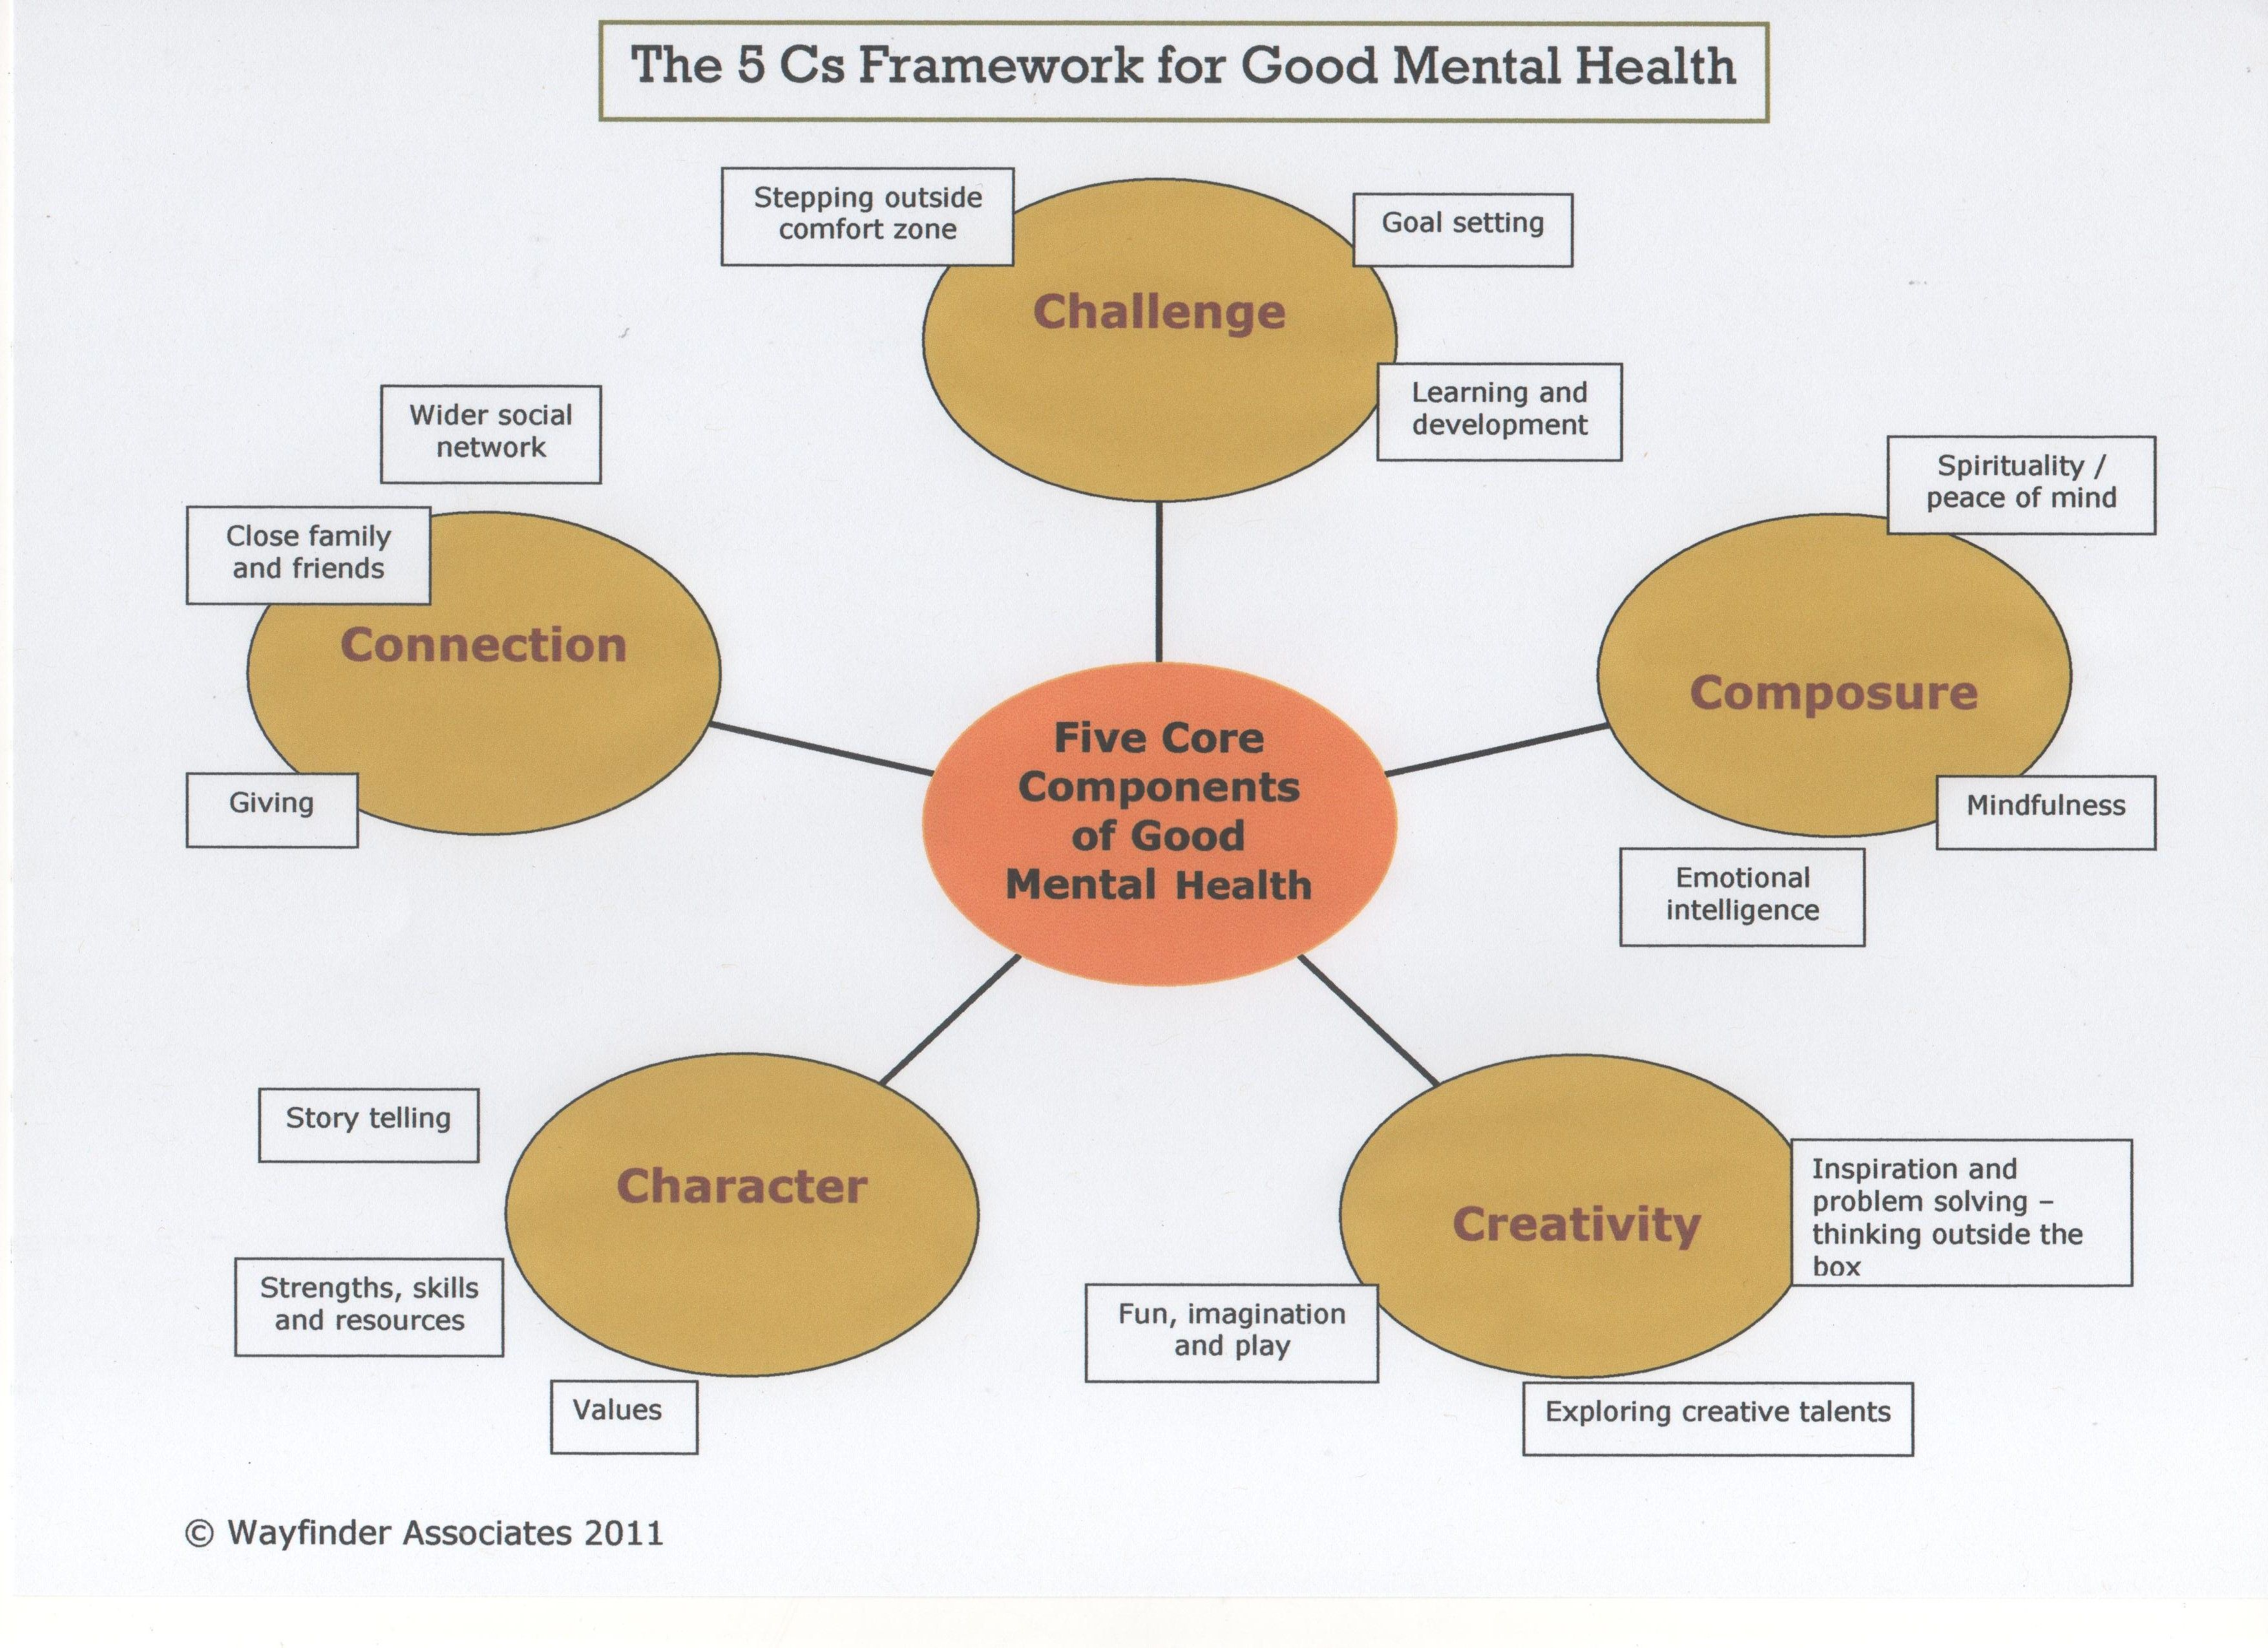 Pin on Social Work Models and interventions etc